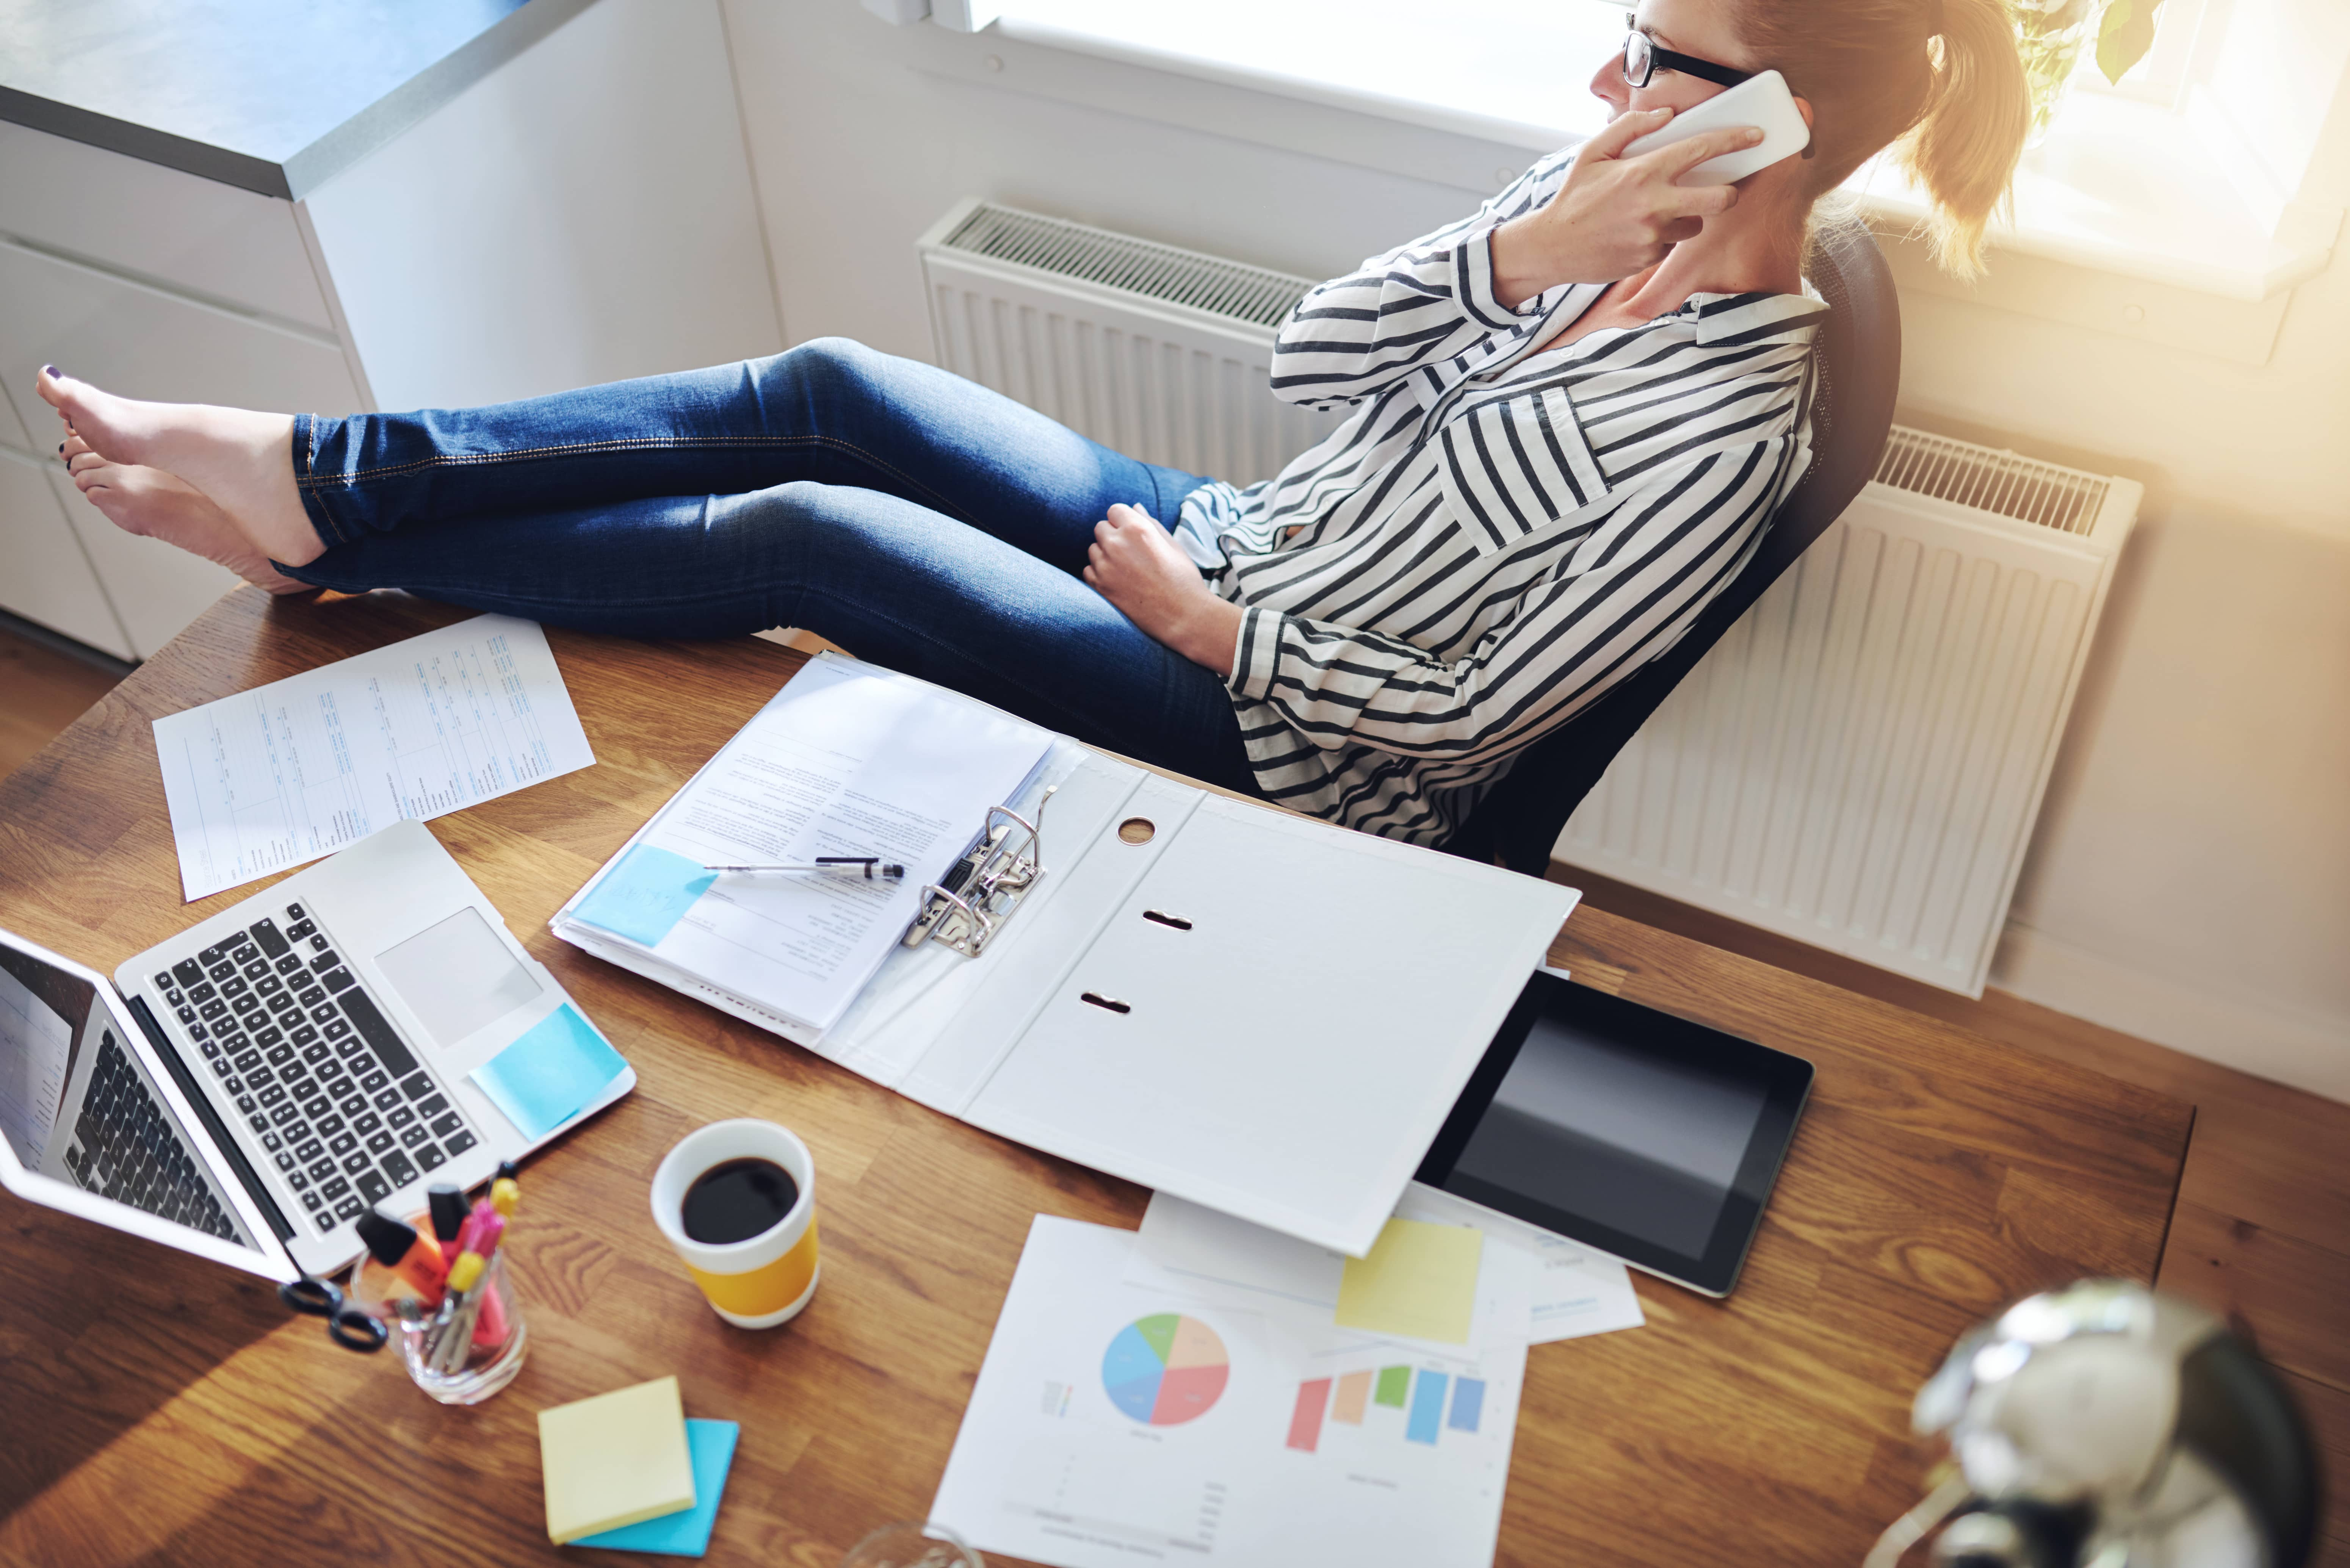 A mompreneur finds work-life balance working at home